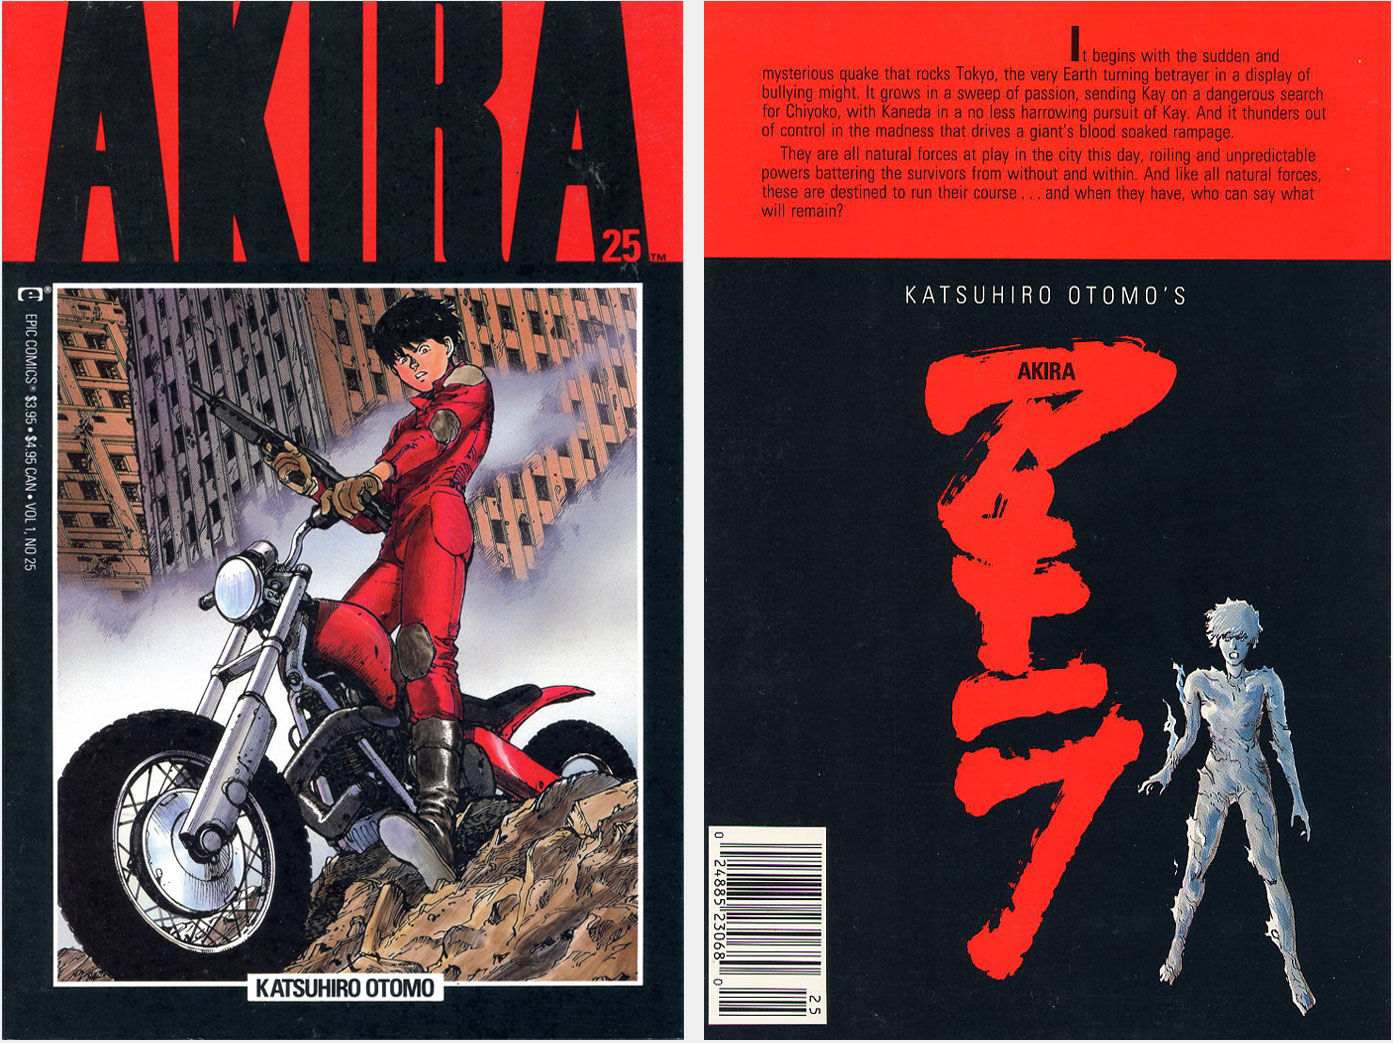 My Best Friend Akira How The Iconic Manga Got Me Through 7th Grade Muse By Clio